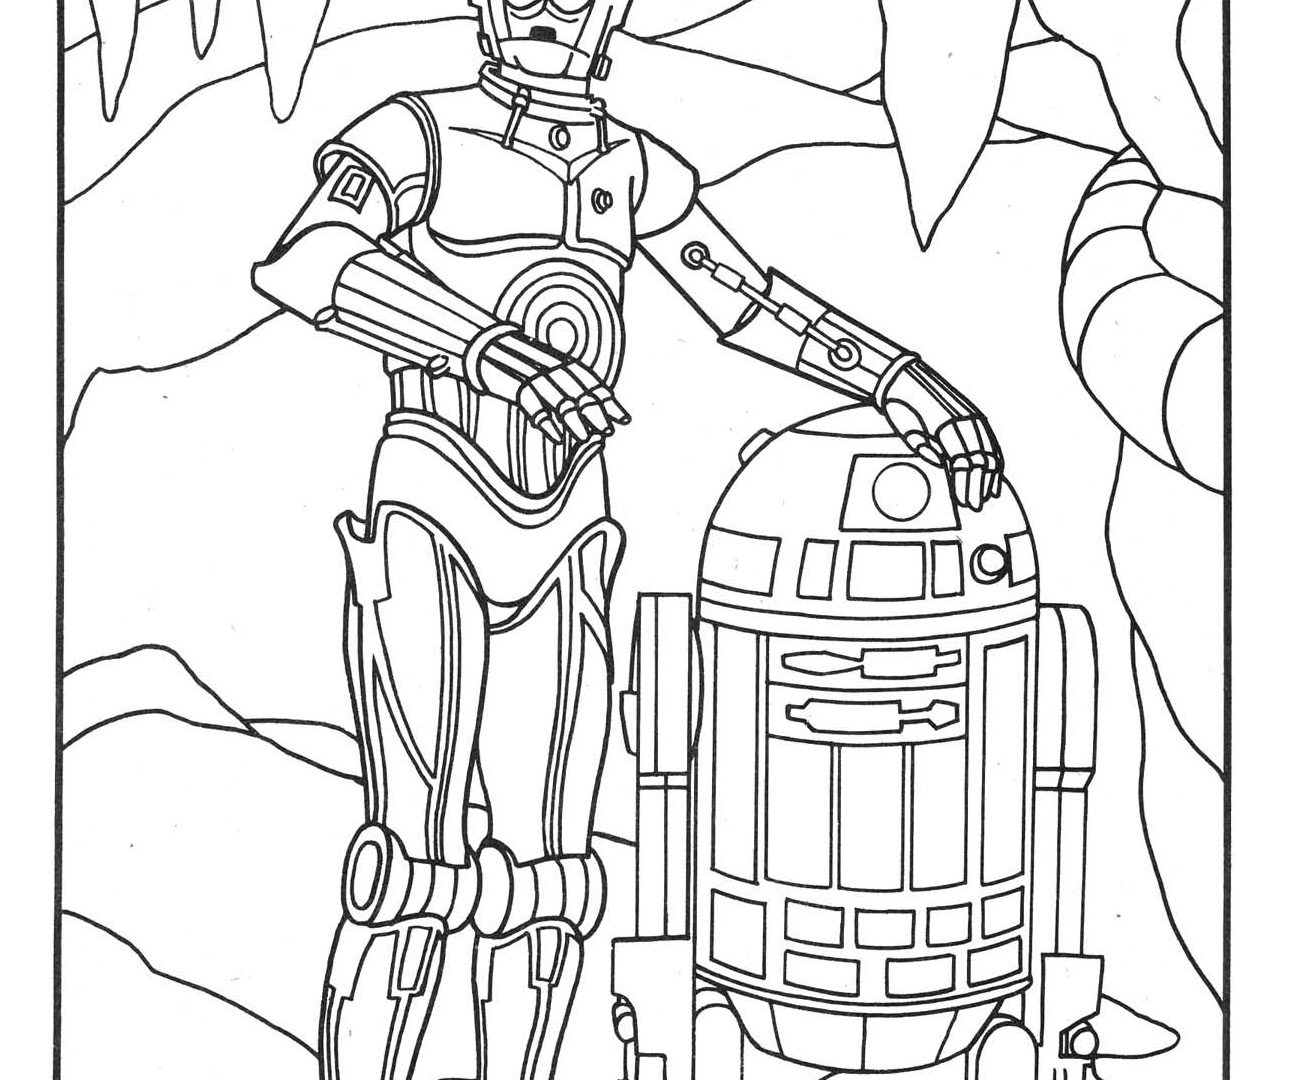 R2d2 Line Drawing at GetDrawings.com | Free for personal use R2d2 ...